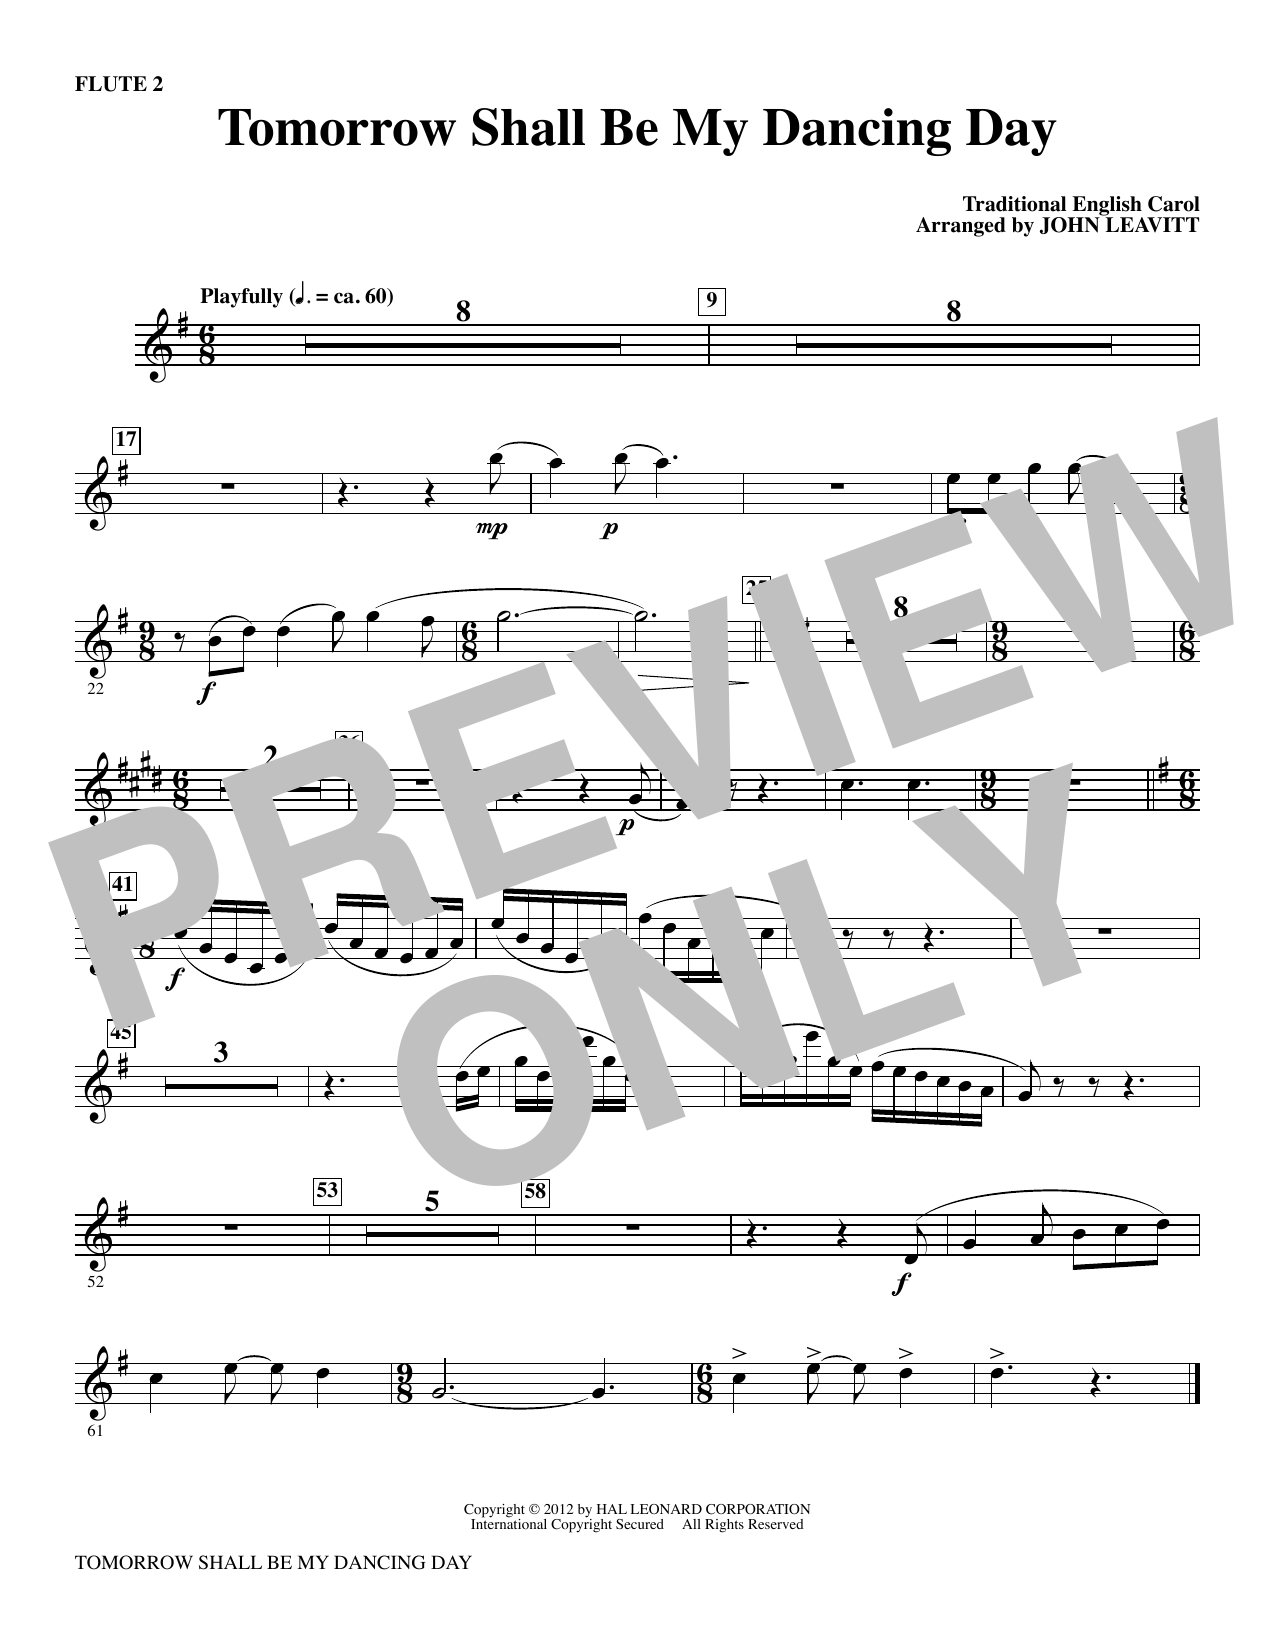 Tomorrow Shall Be My Dancing Day - Flute 2 Sheet Music